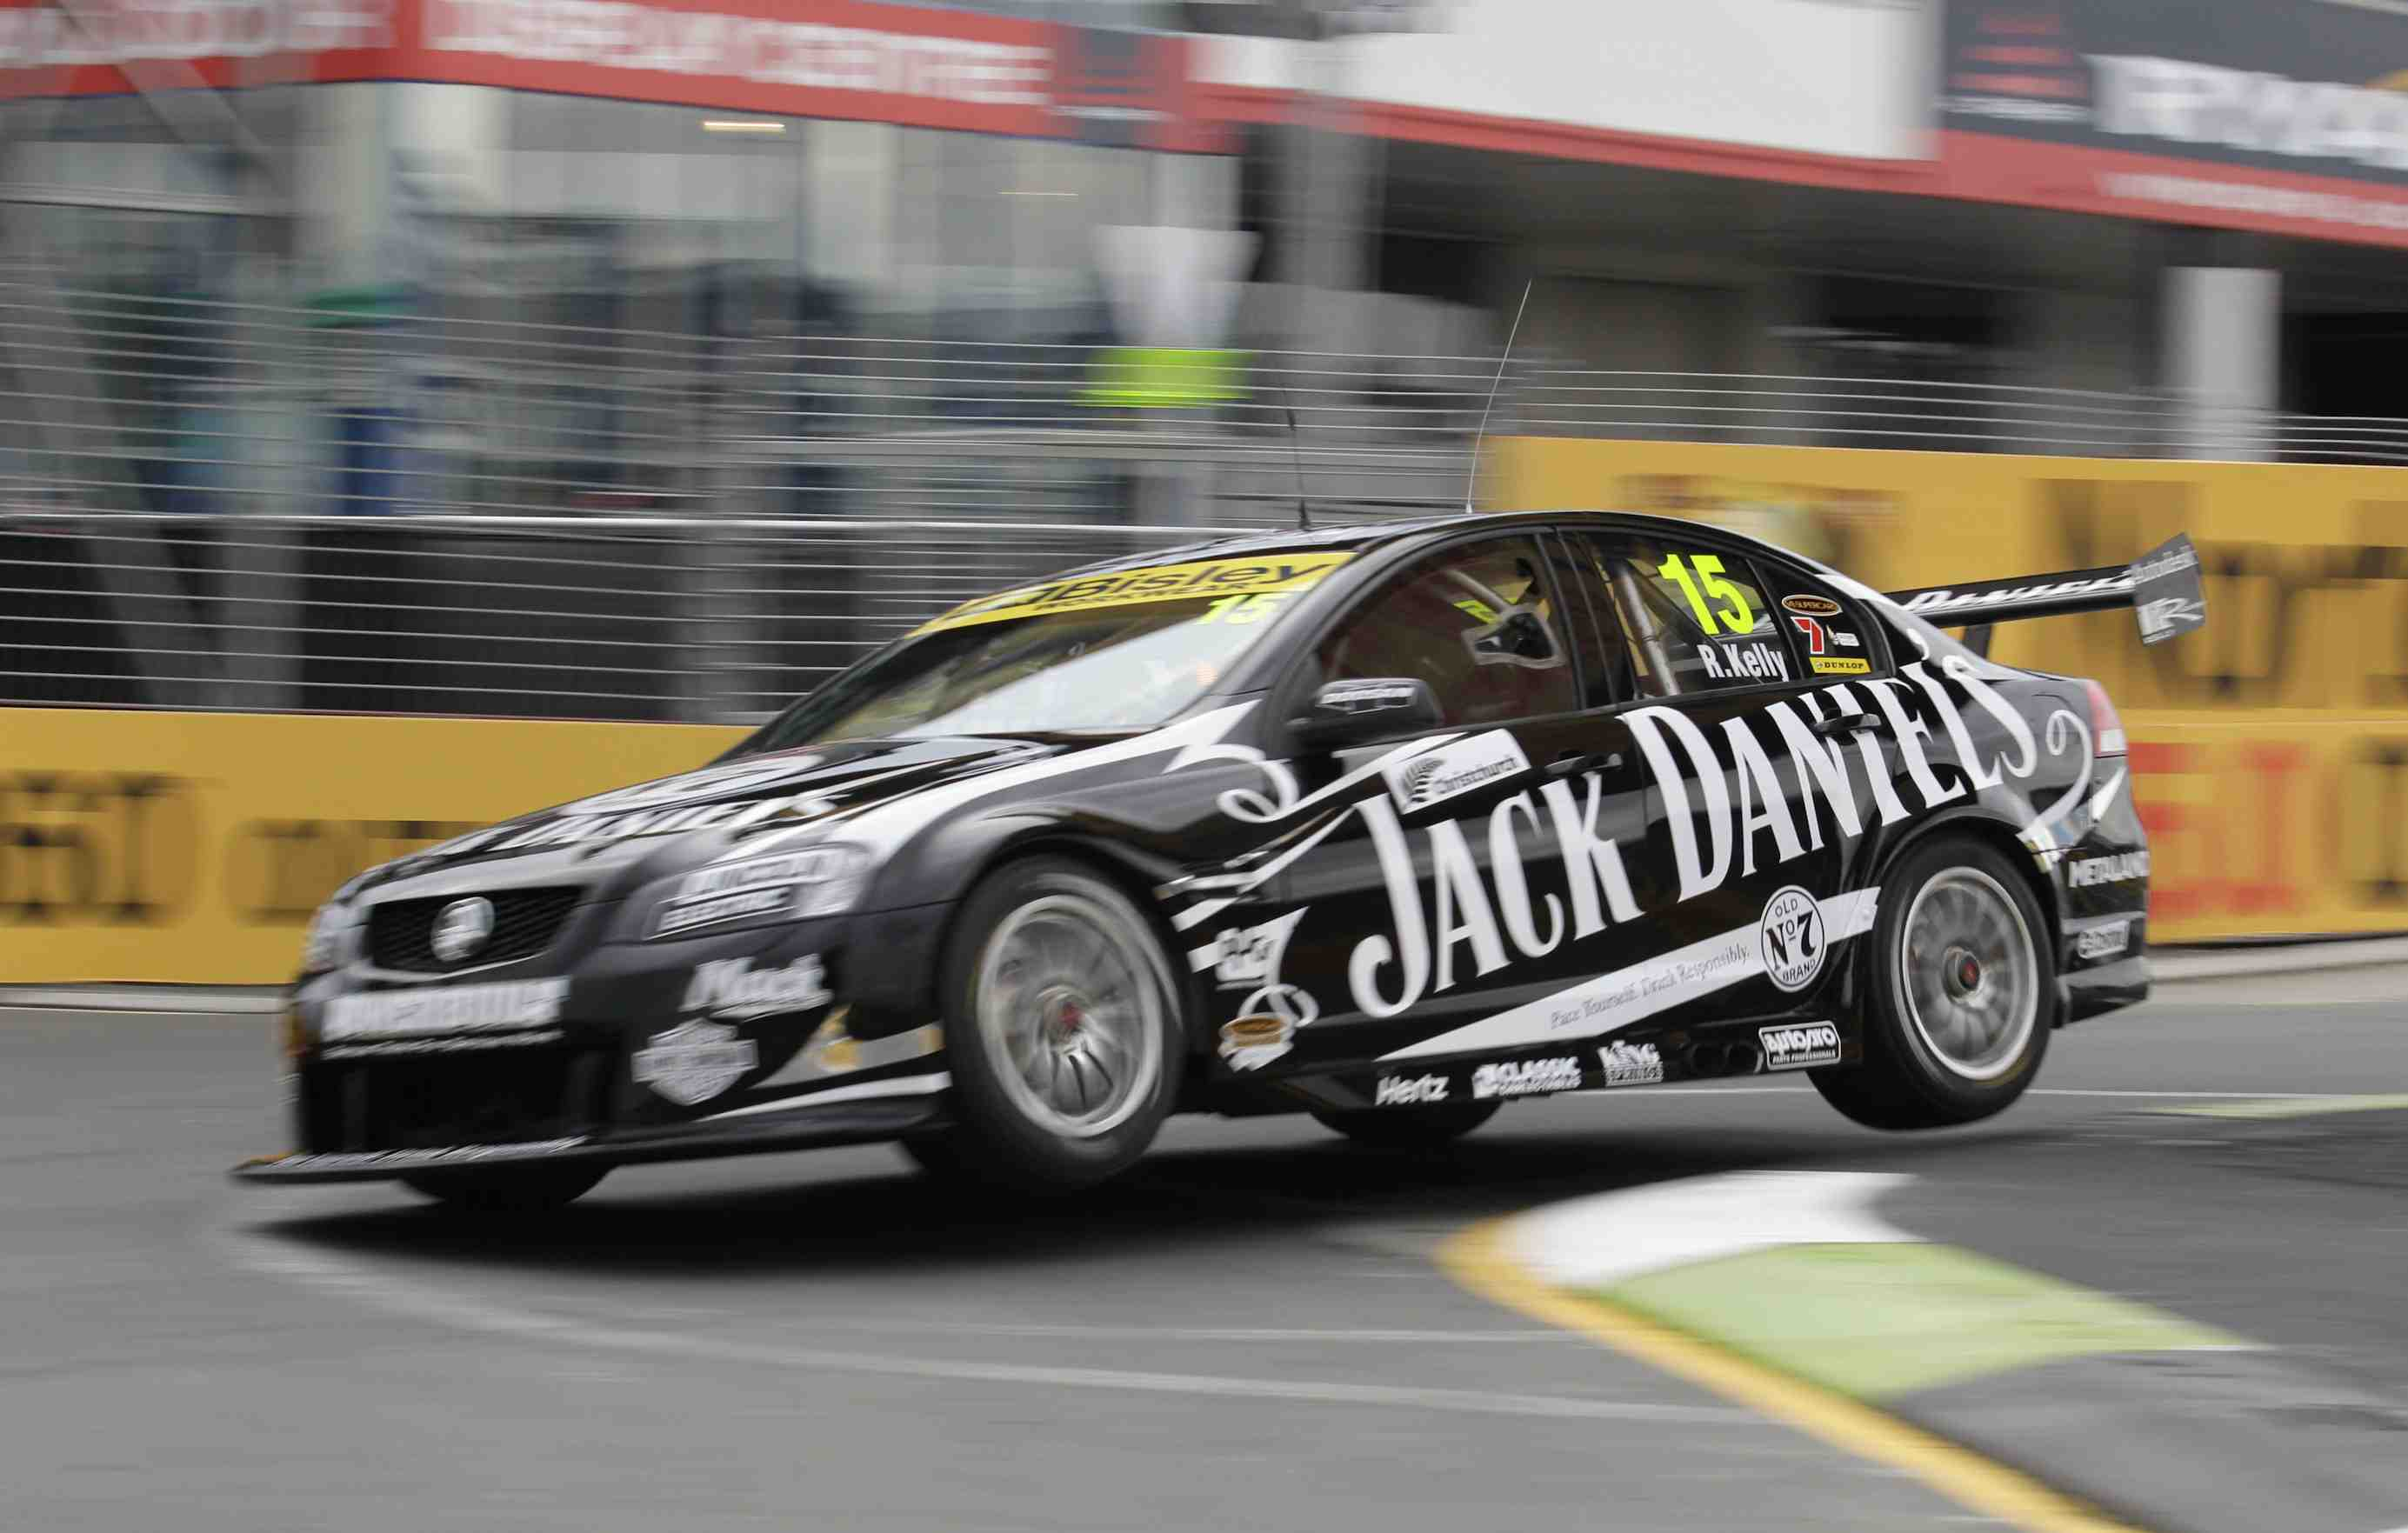 V8 Supercars Wallpapers And Pictures Hd Wallpapers 2769x1763